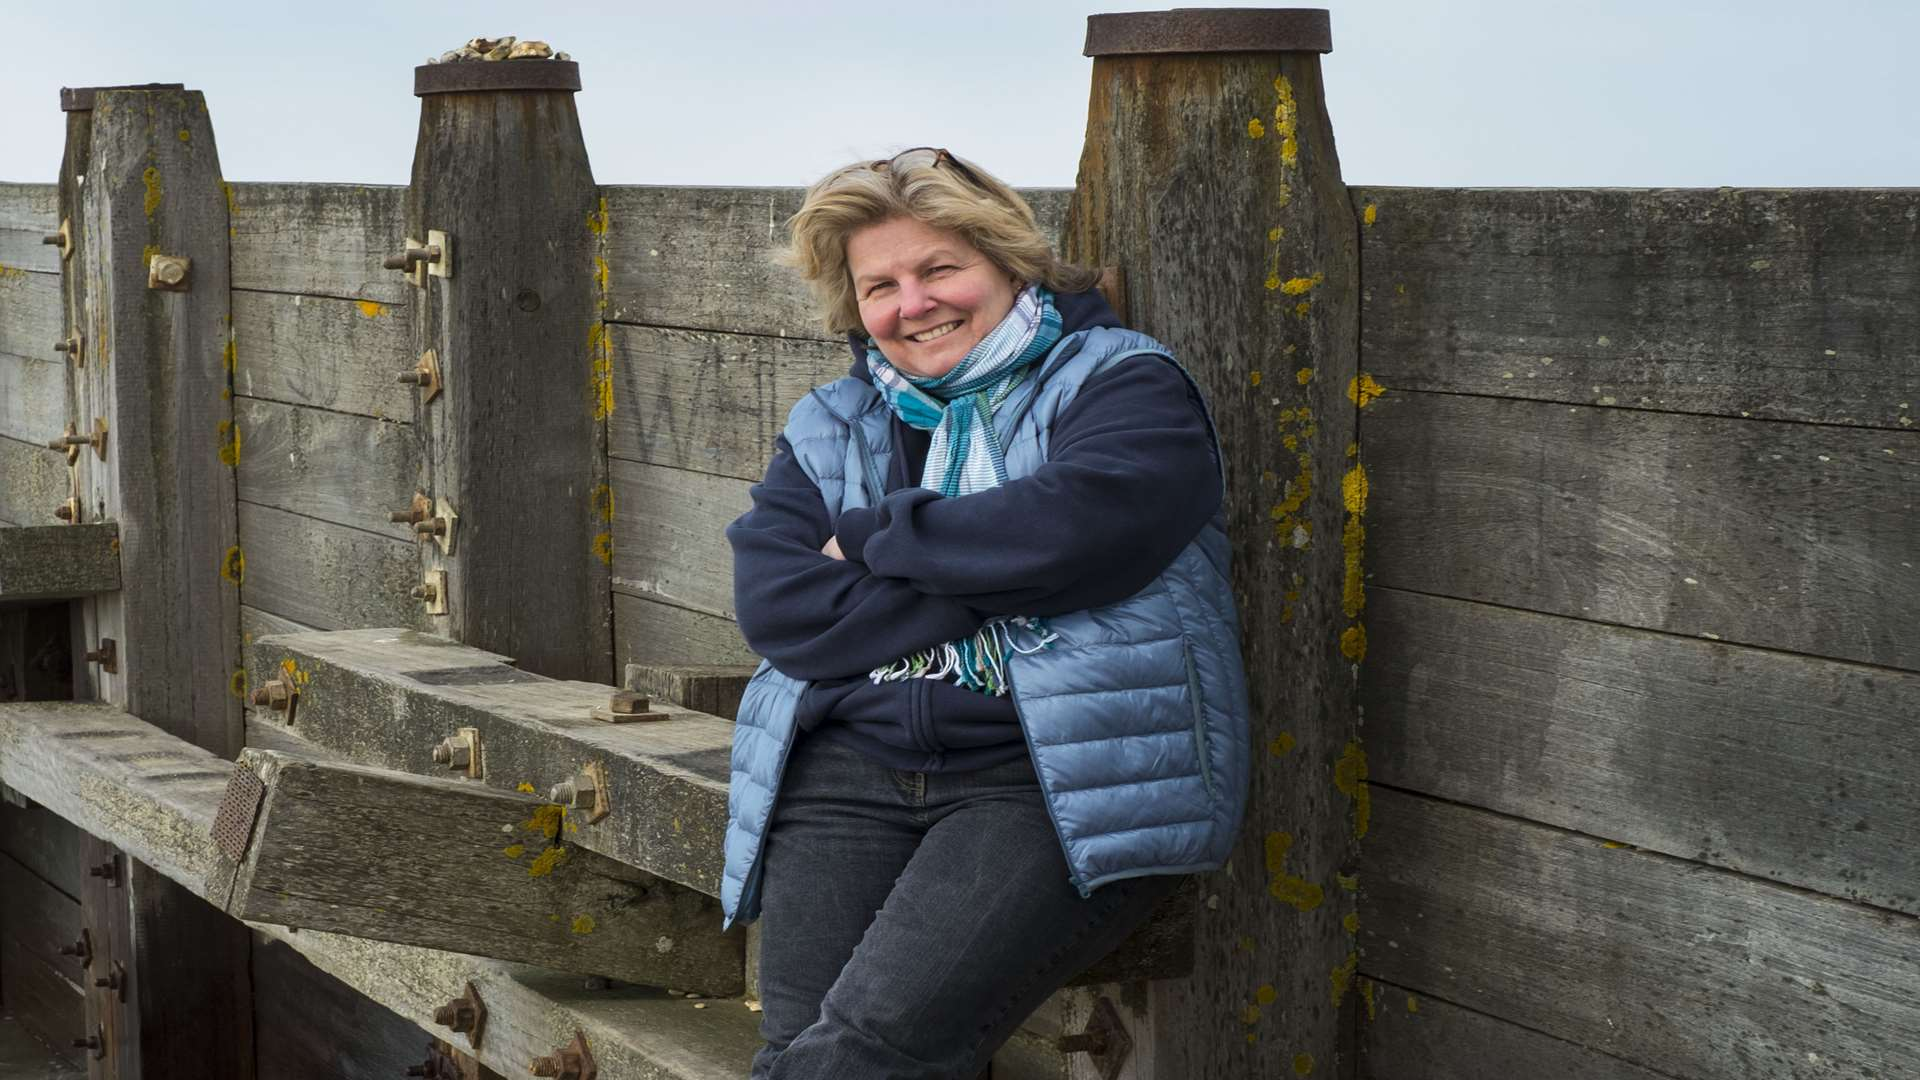 Sandi Toksvig will be co-presenting the show